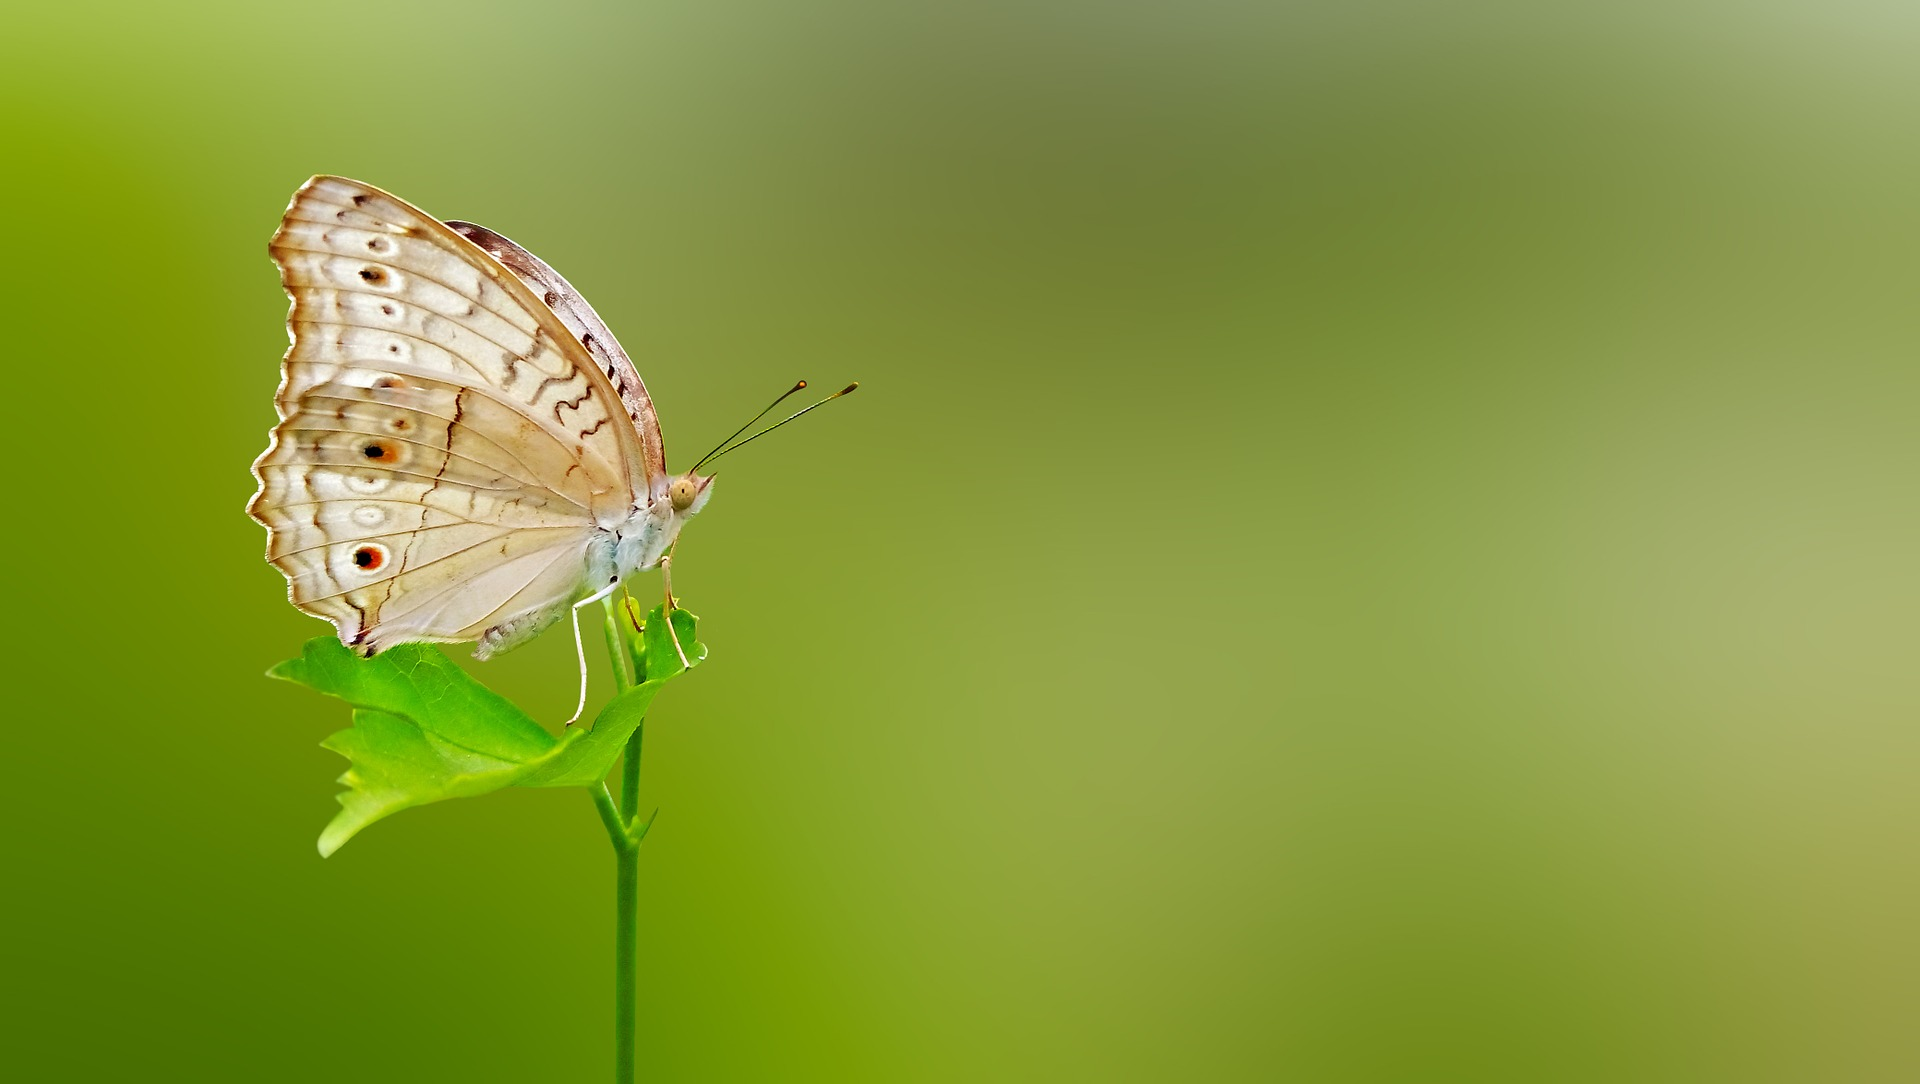 Butterfly on leaf is a symbol of a sustainable planet.